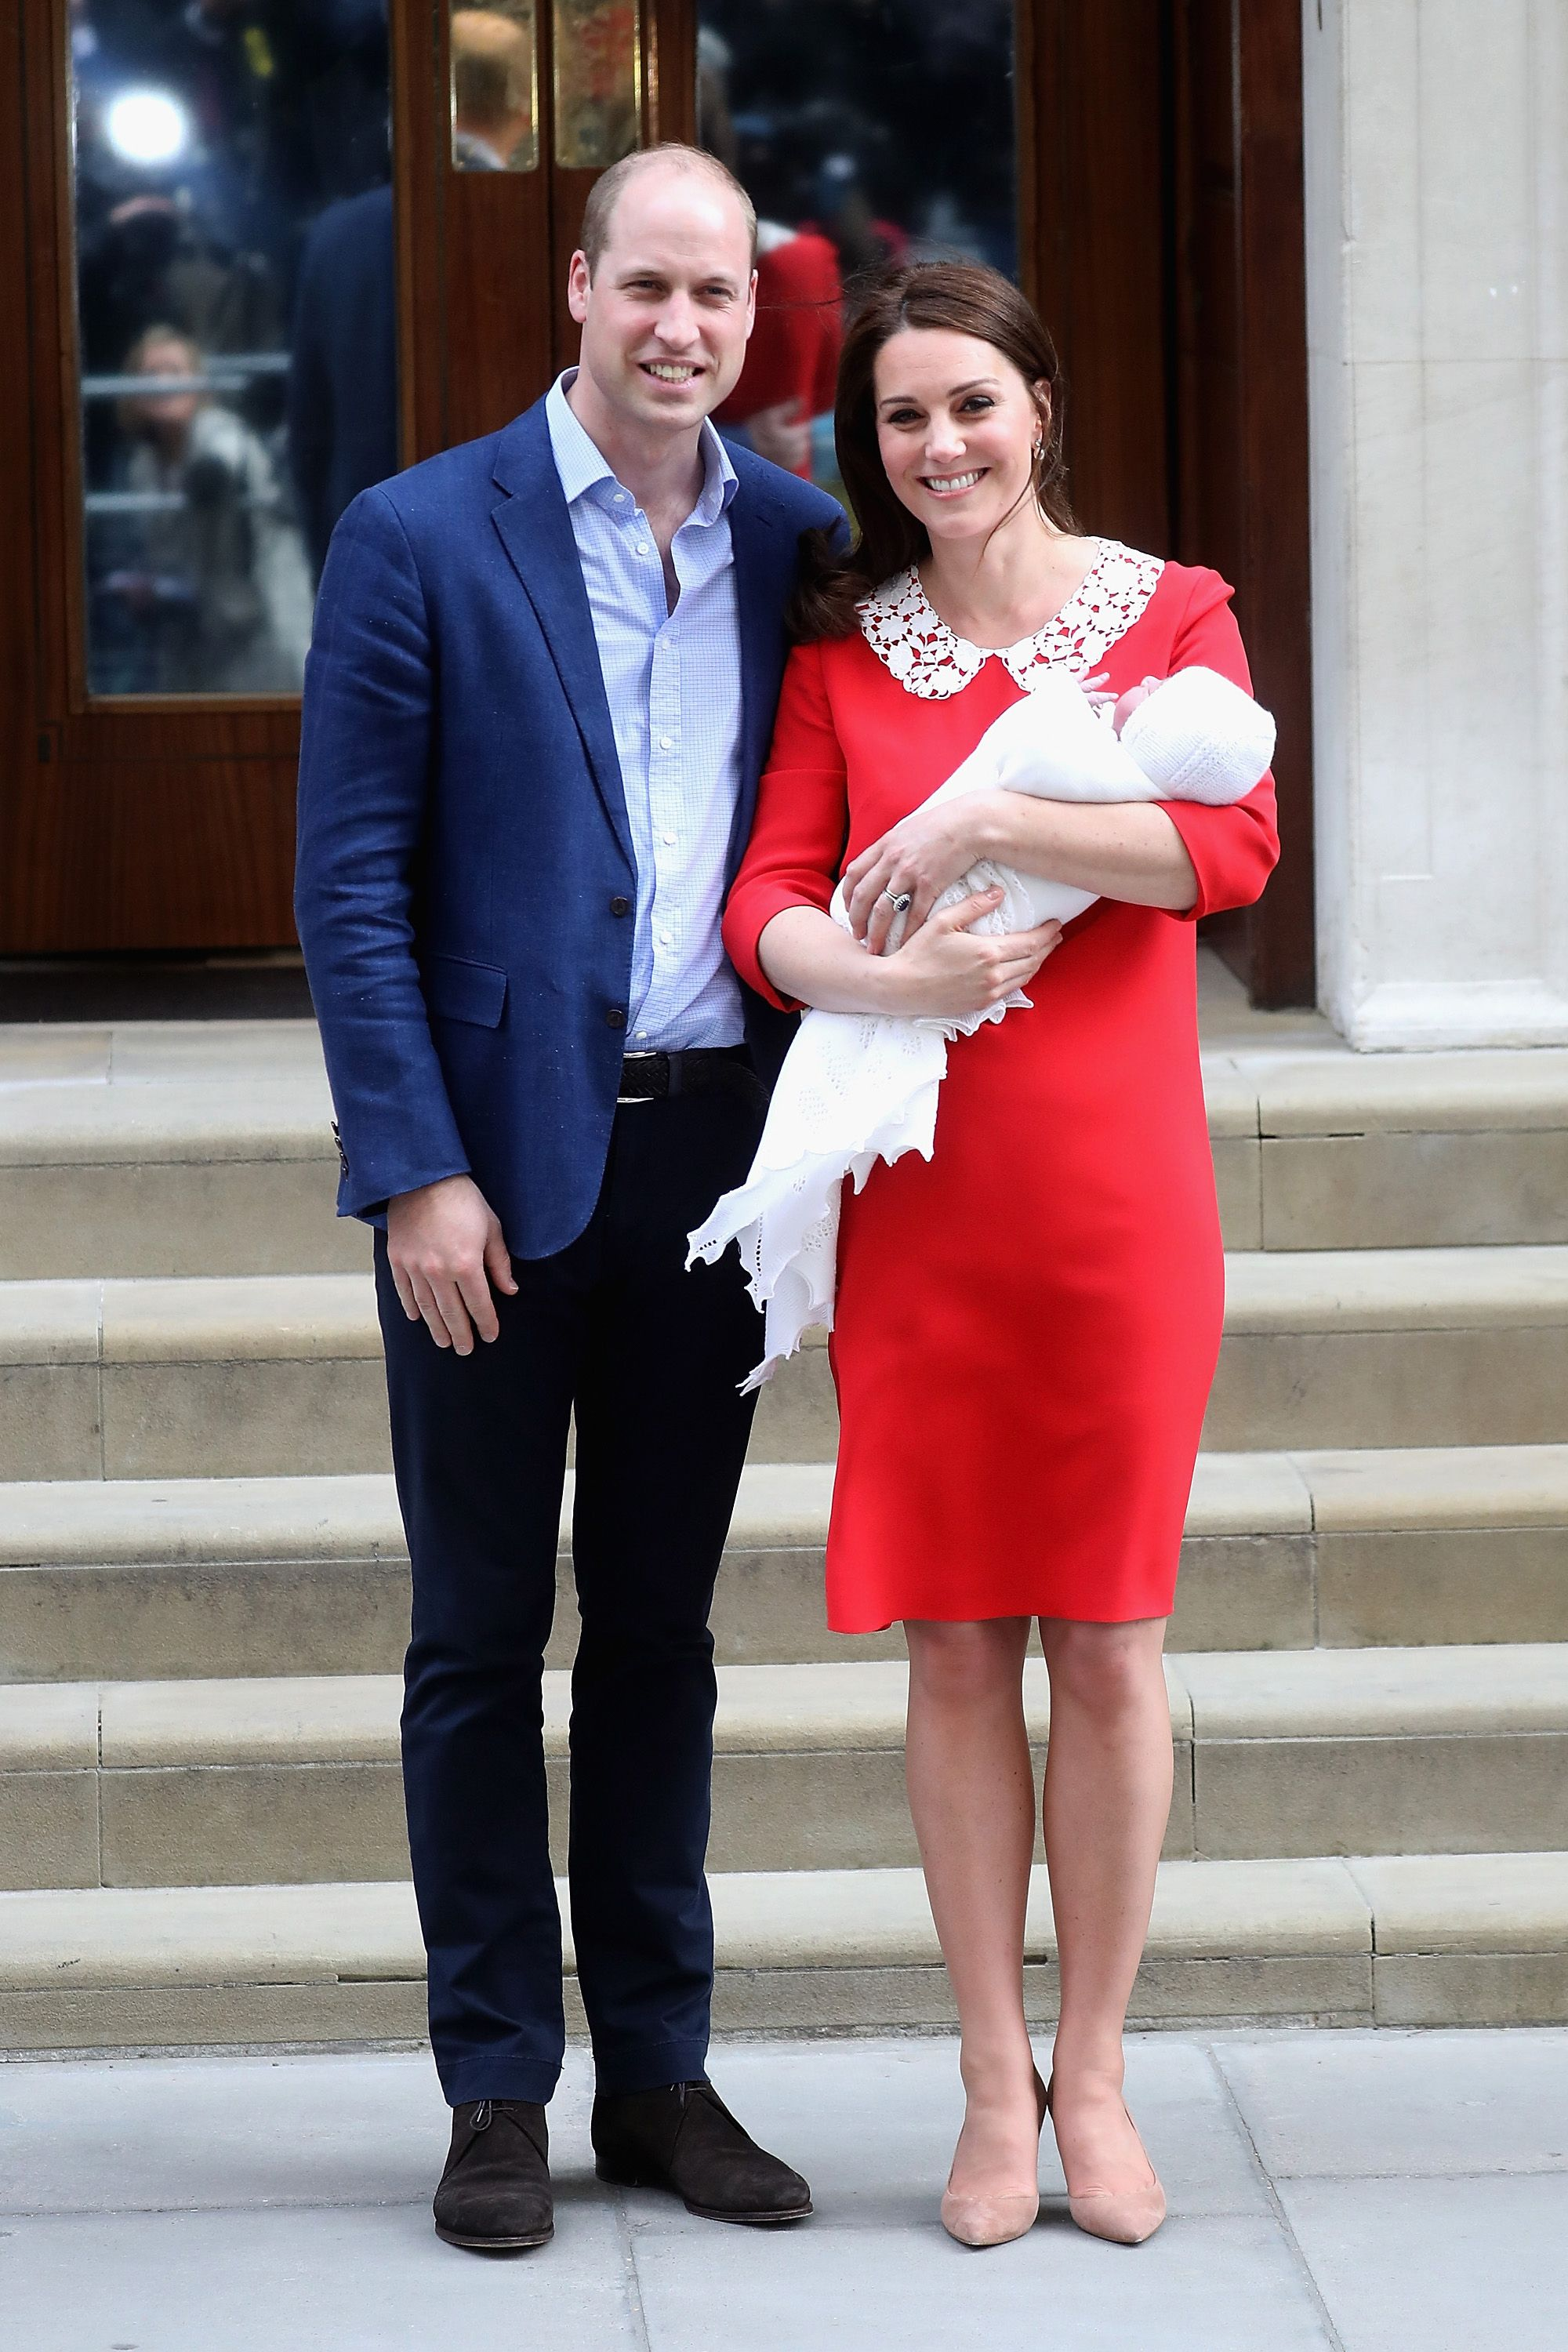 Royal Baby LATEST: Kate Middleton Admitted To Hospital, Palace Confirms